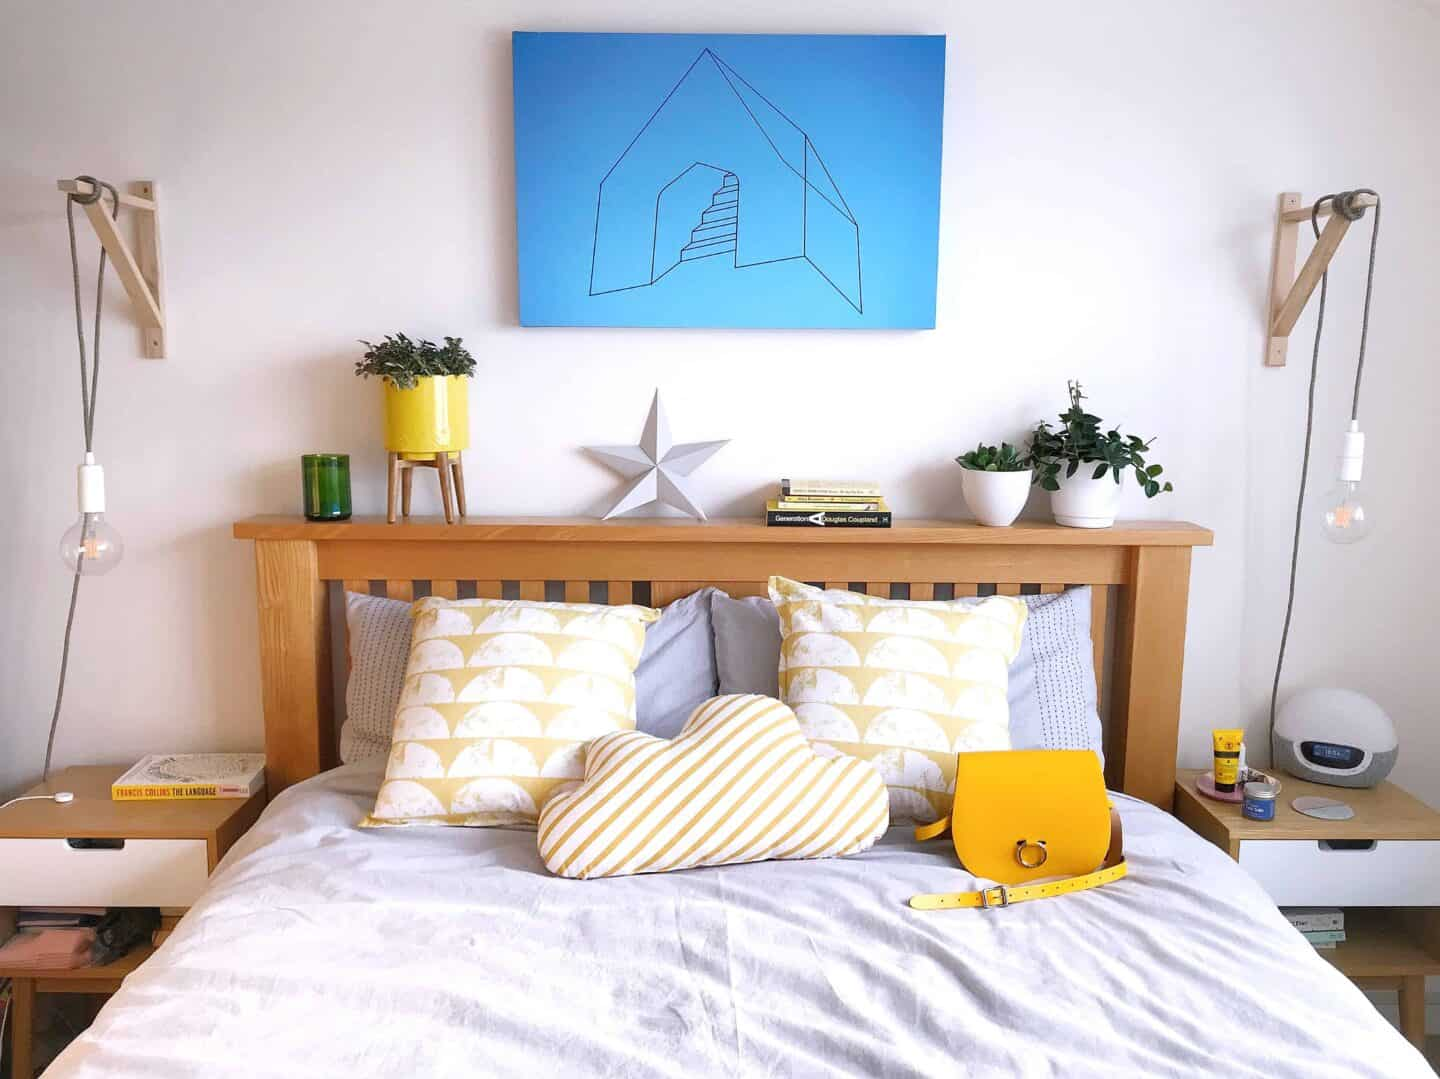 Styling my bedroom with Deyongs Nimes Yard Dyed Chambray Duvet Bed linen Set with yellow scatter cushions